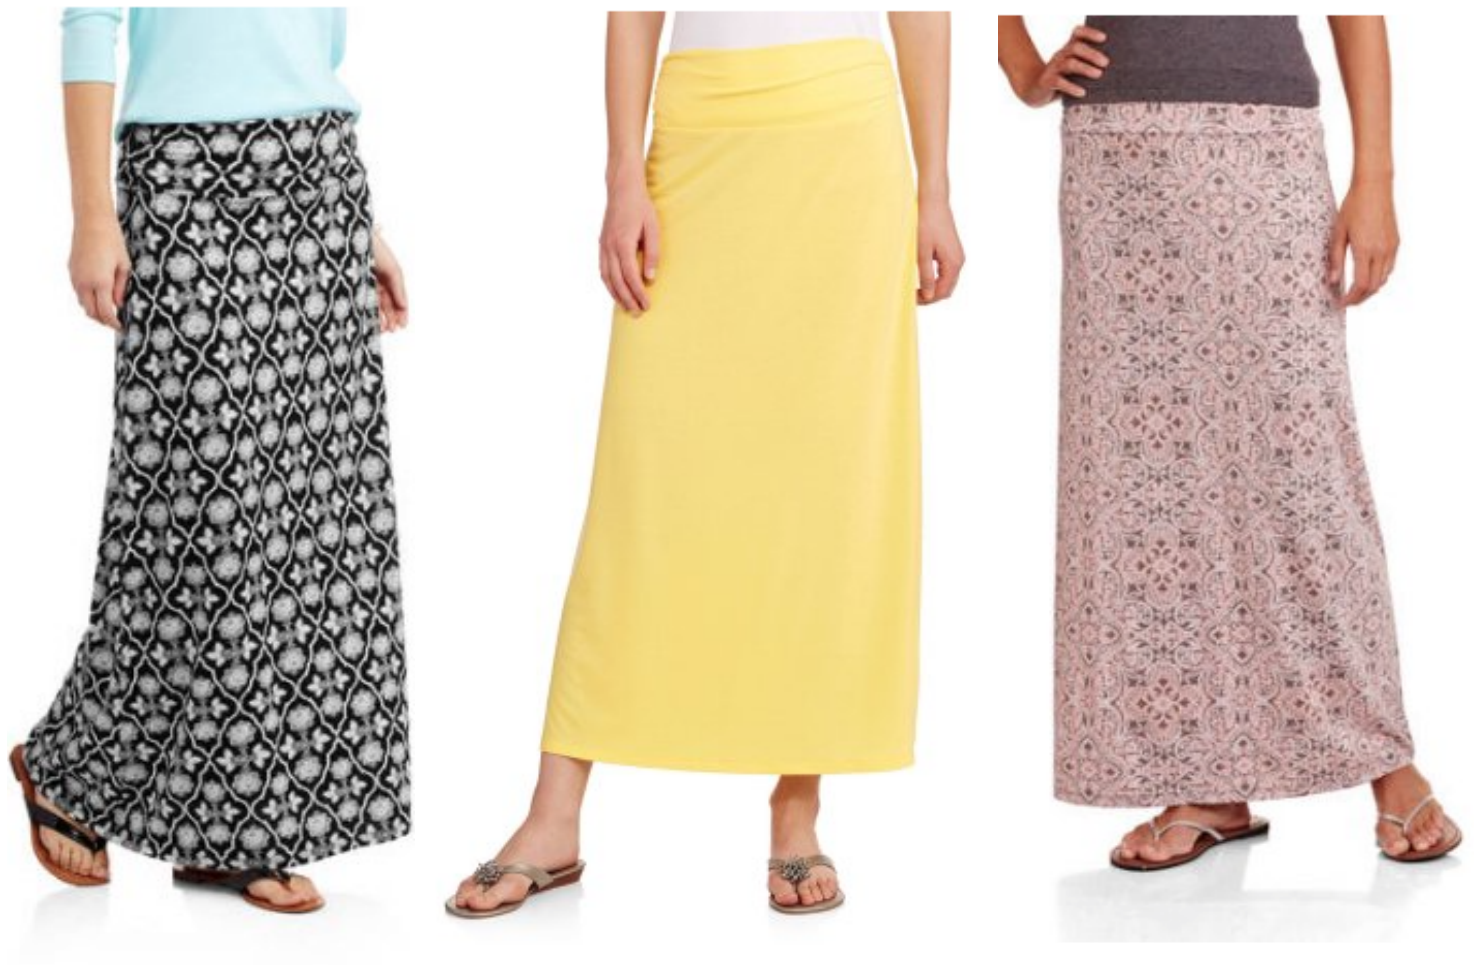 7a169a651 Walmart is offering Faded Glory Women's Fashion Maxi Skirts for just $5  shipped.